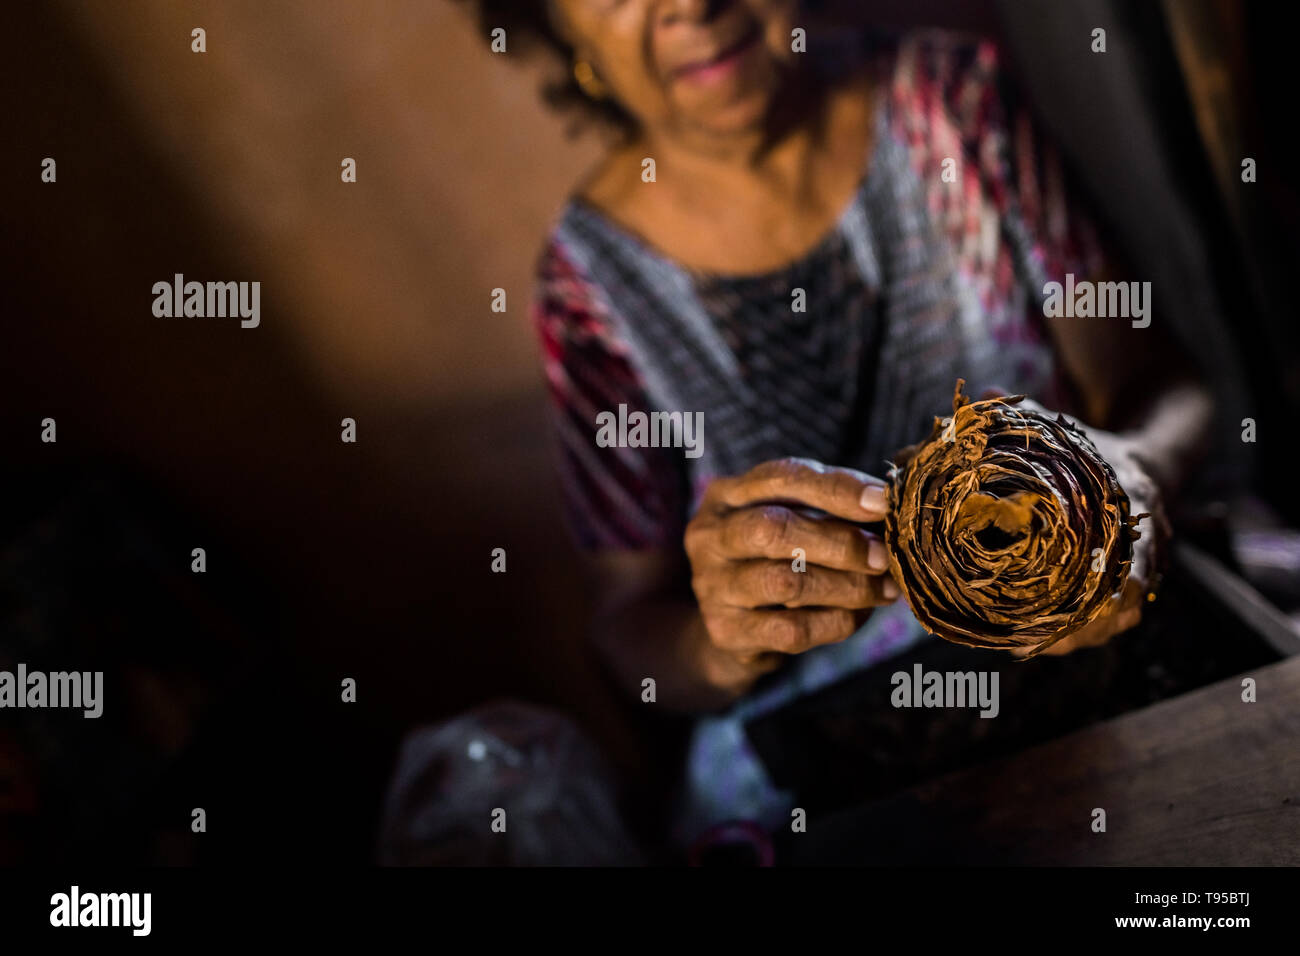 Laura Peña, a 67-years-old Salvadoran woman, unwraps a pack of rolled tobacco leaves to make handmade cigars in Suchitoto, El Salvador. - Stock Image